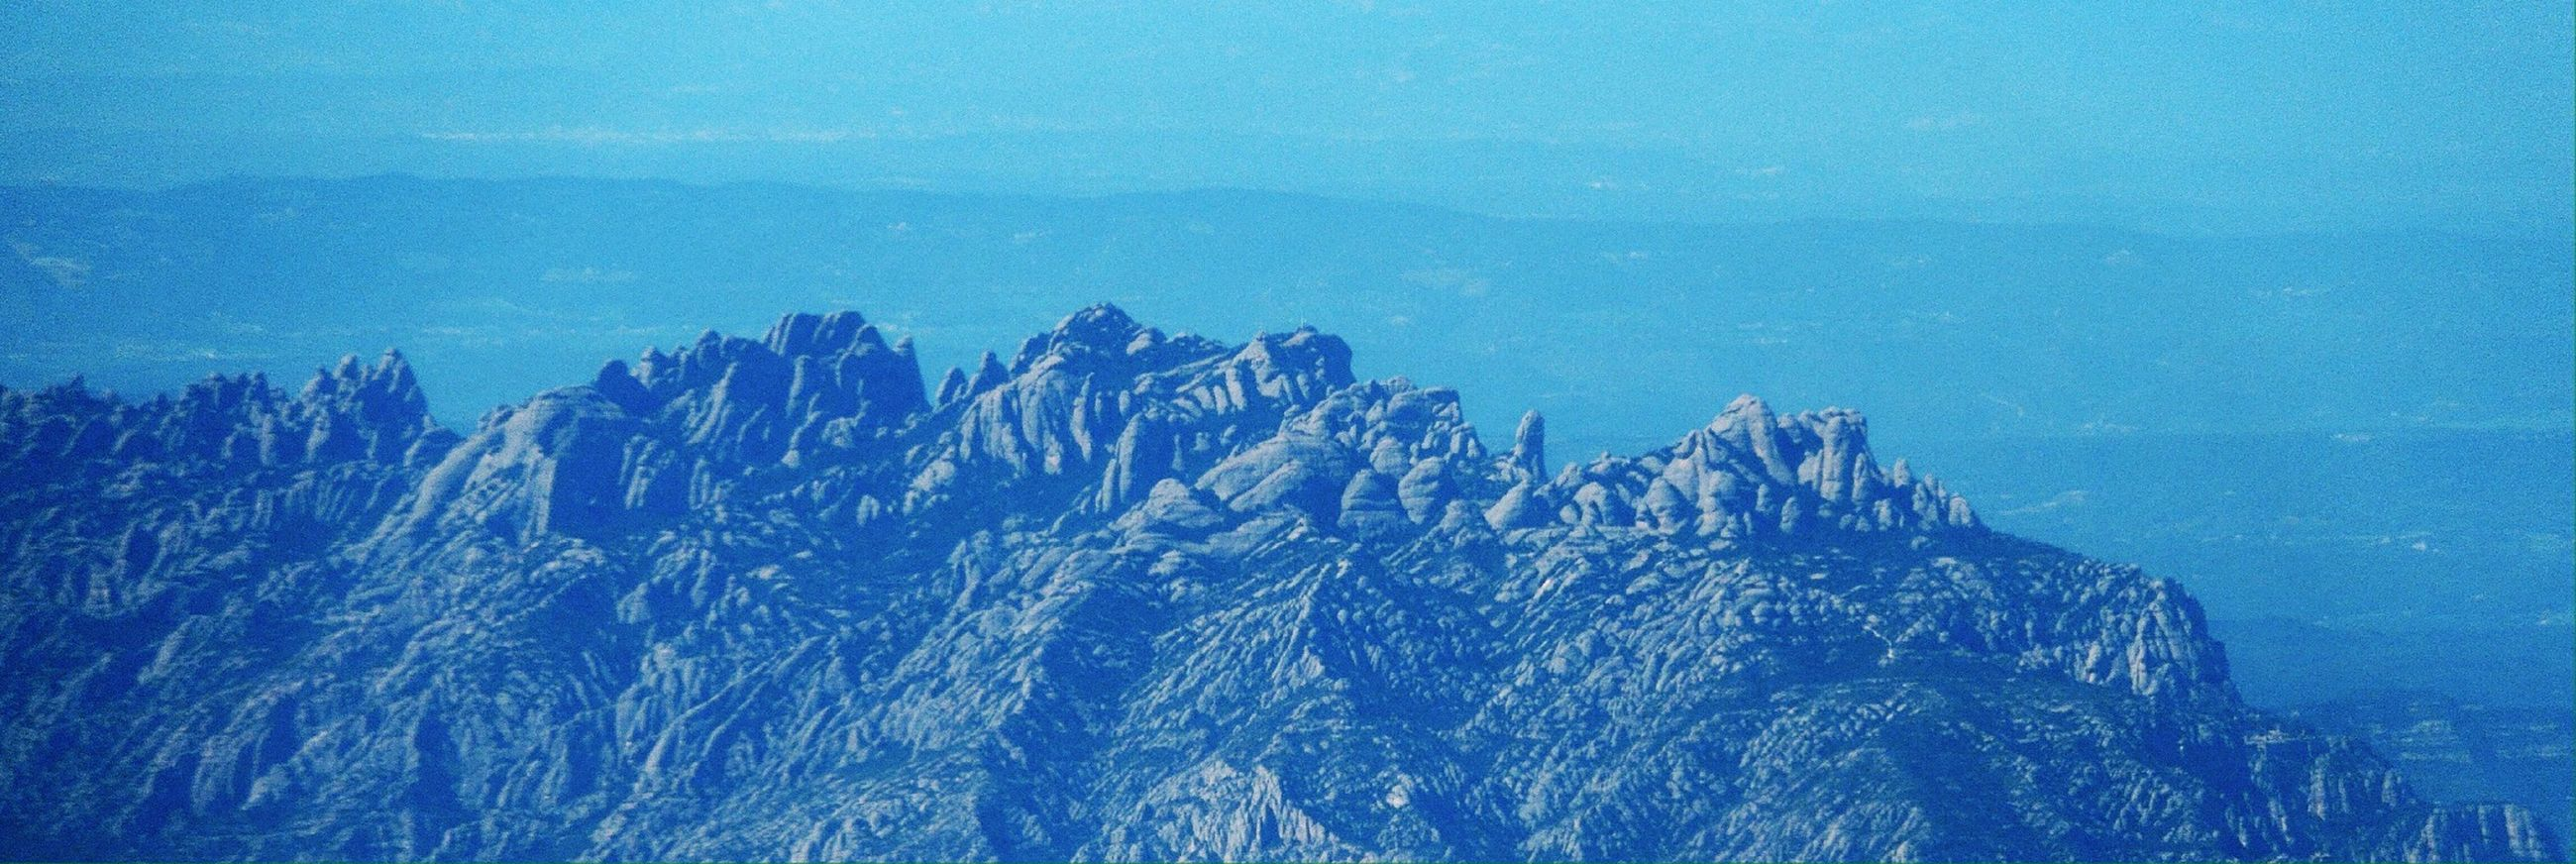 Mountains From An Airplane Window Landscape Blue